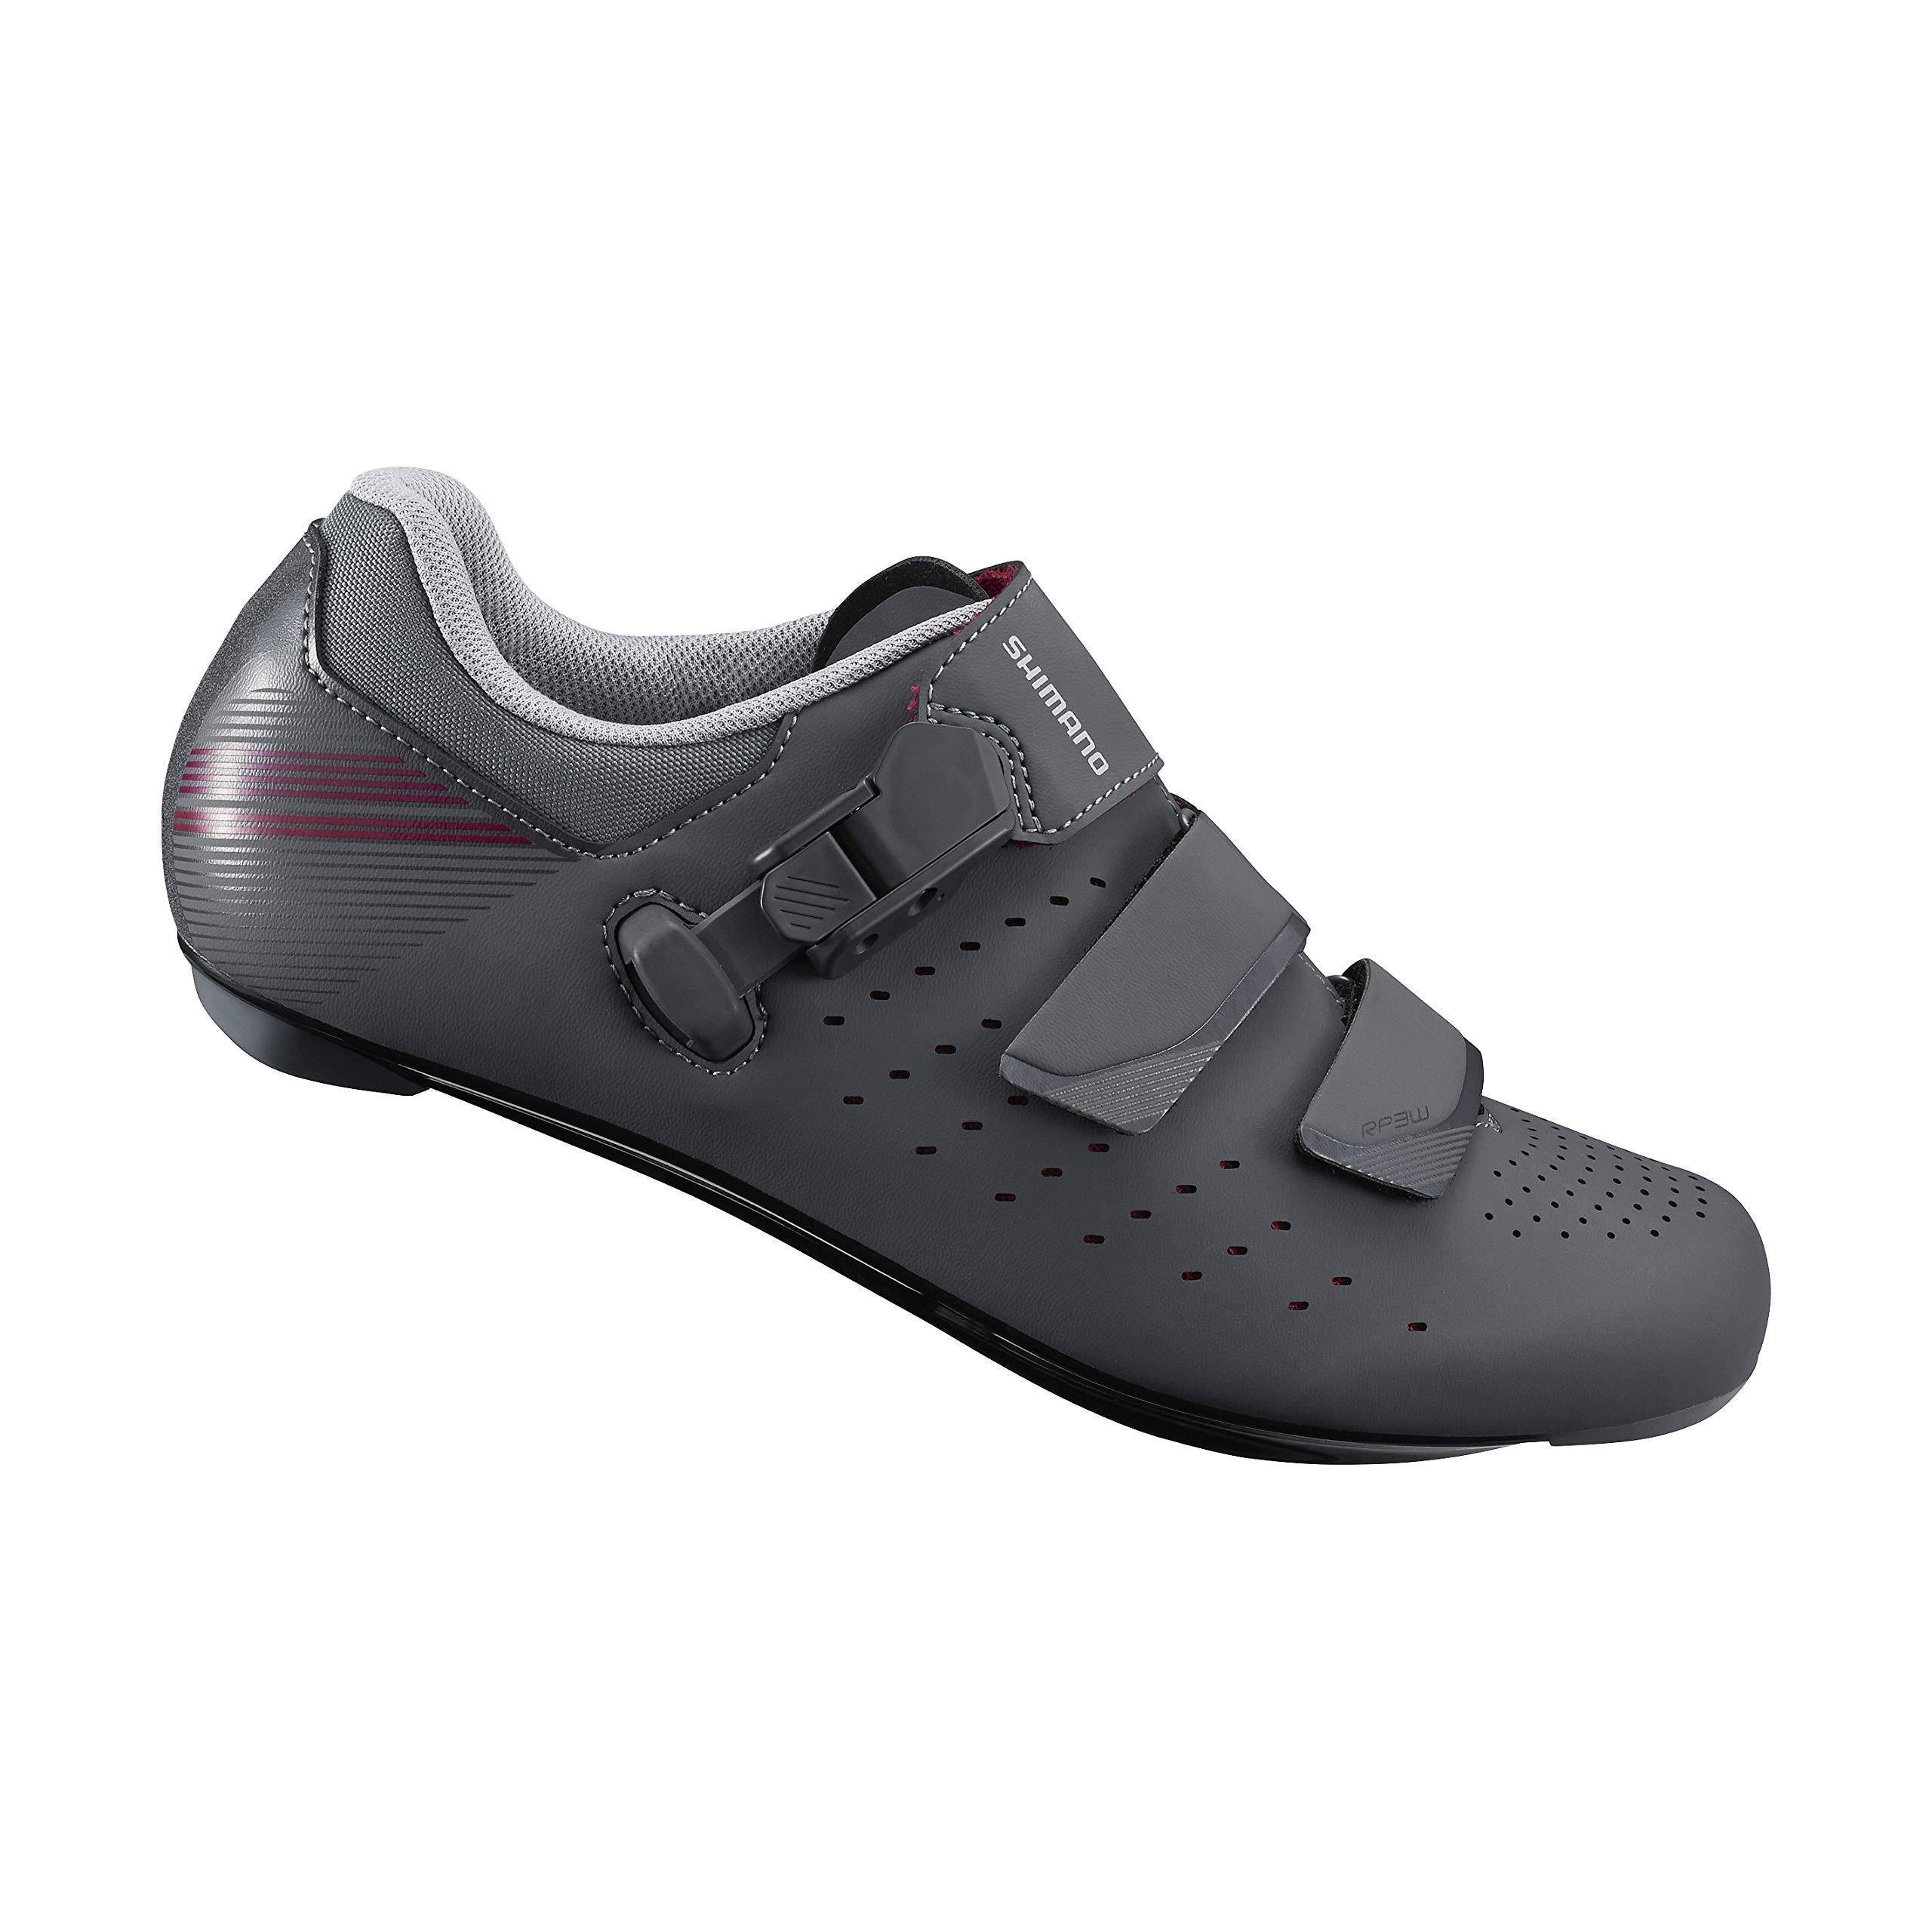 Shimano SH-RP3W Women's Road Cycling Shoes 2019 - Gray Size 39